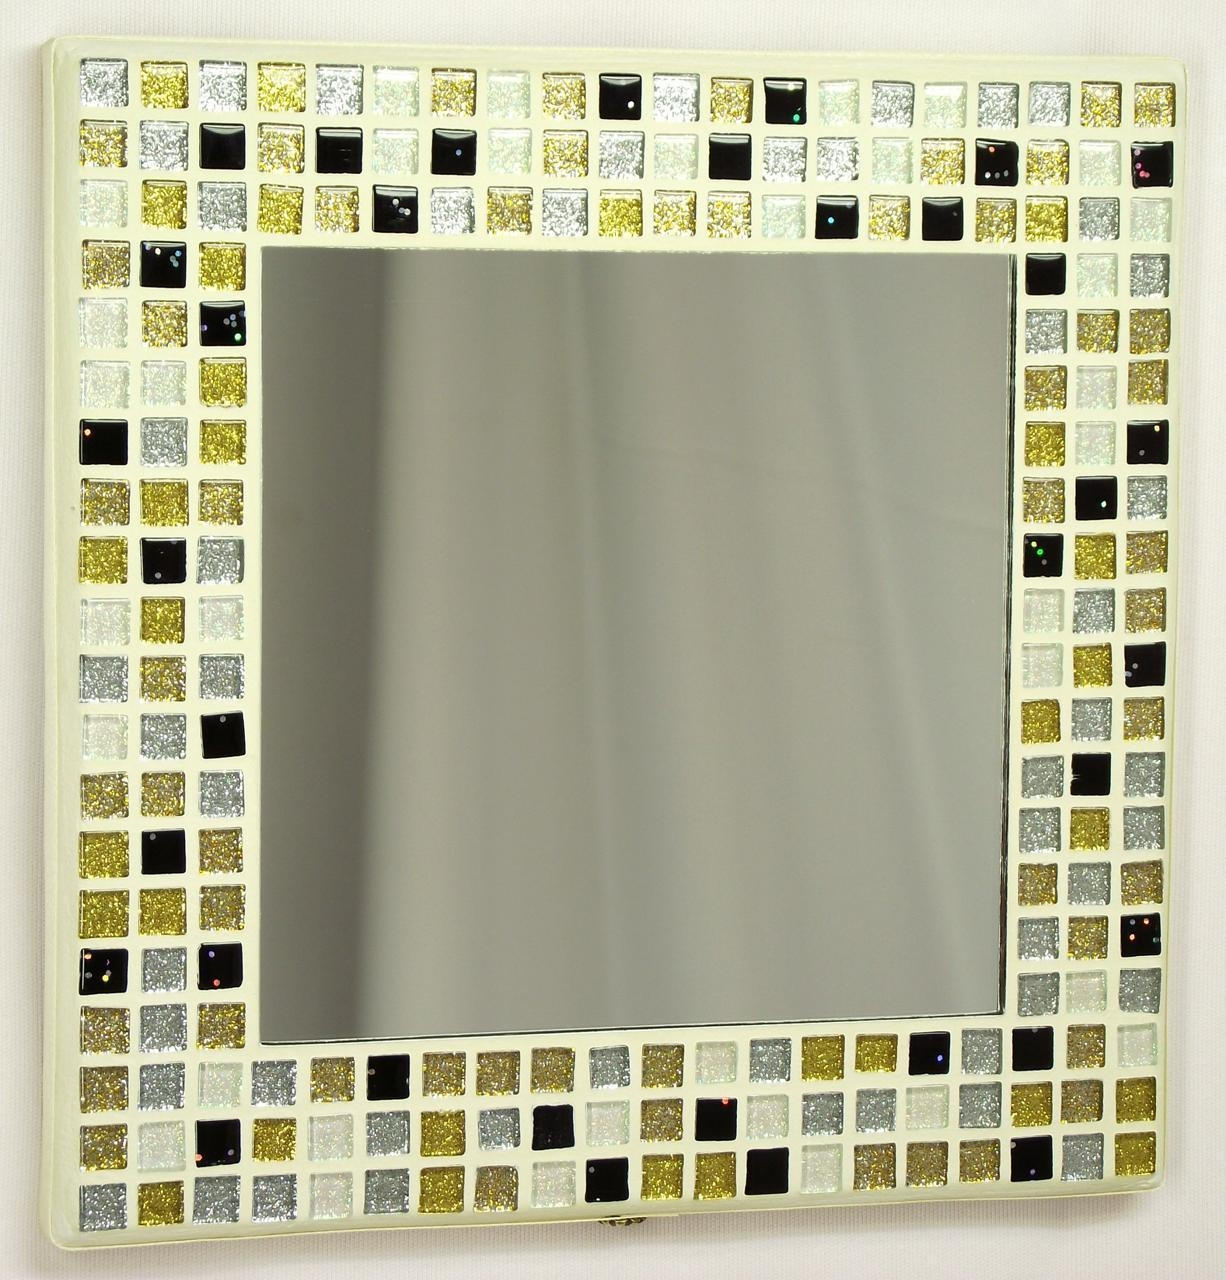 Mosaic Mirrors For Sale 109 Stunning Decor With All White Wall Inside Glitter Wall Mirror (Image 15 of 20)